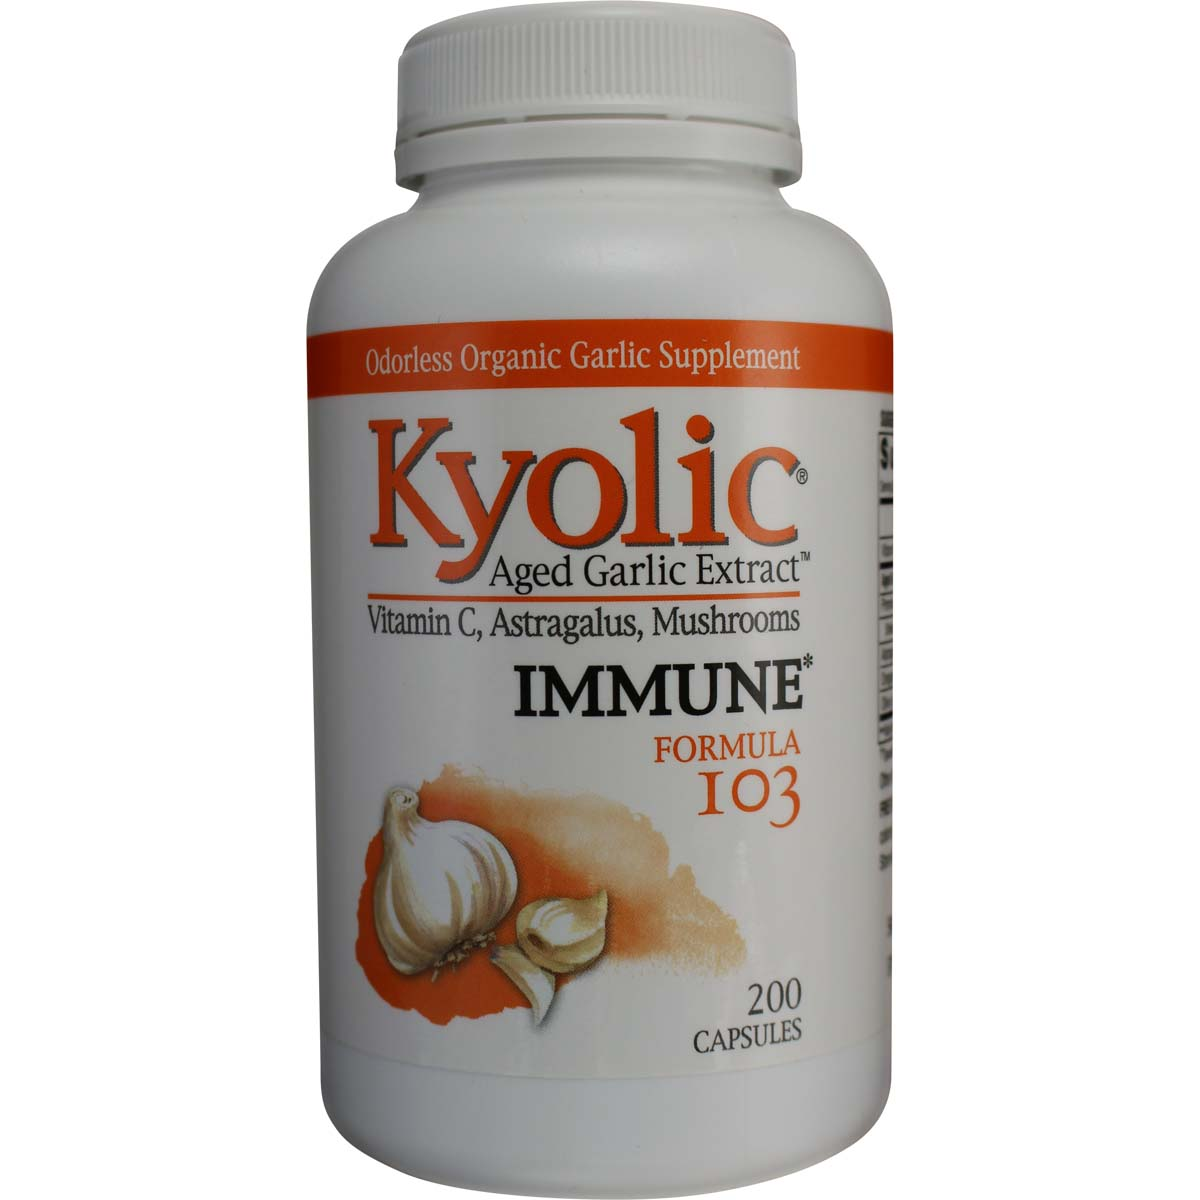 Garlic Kyolic 174 Aged Garlic Extract Vitamin C Astragalus